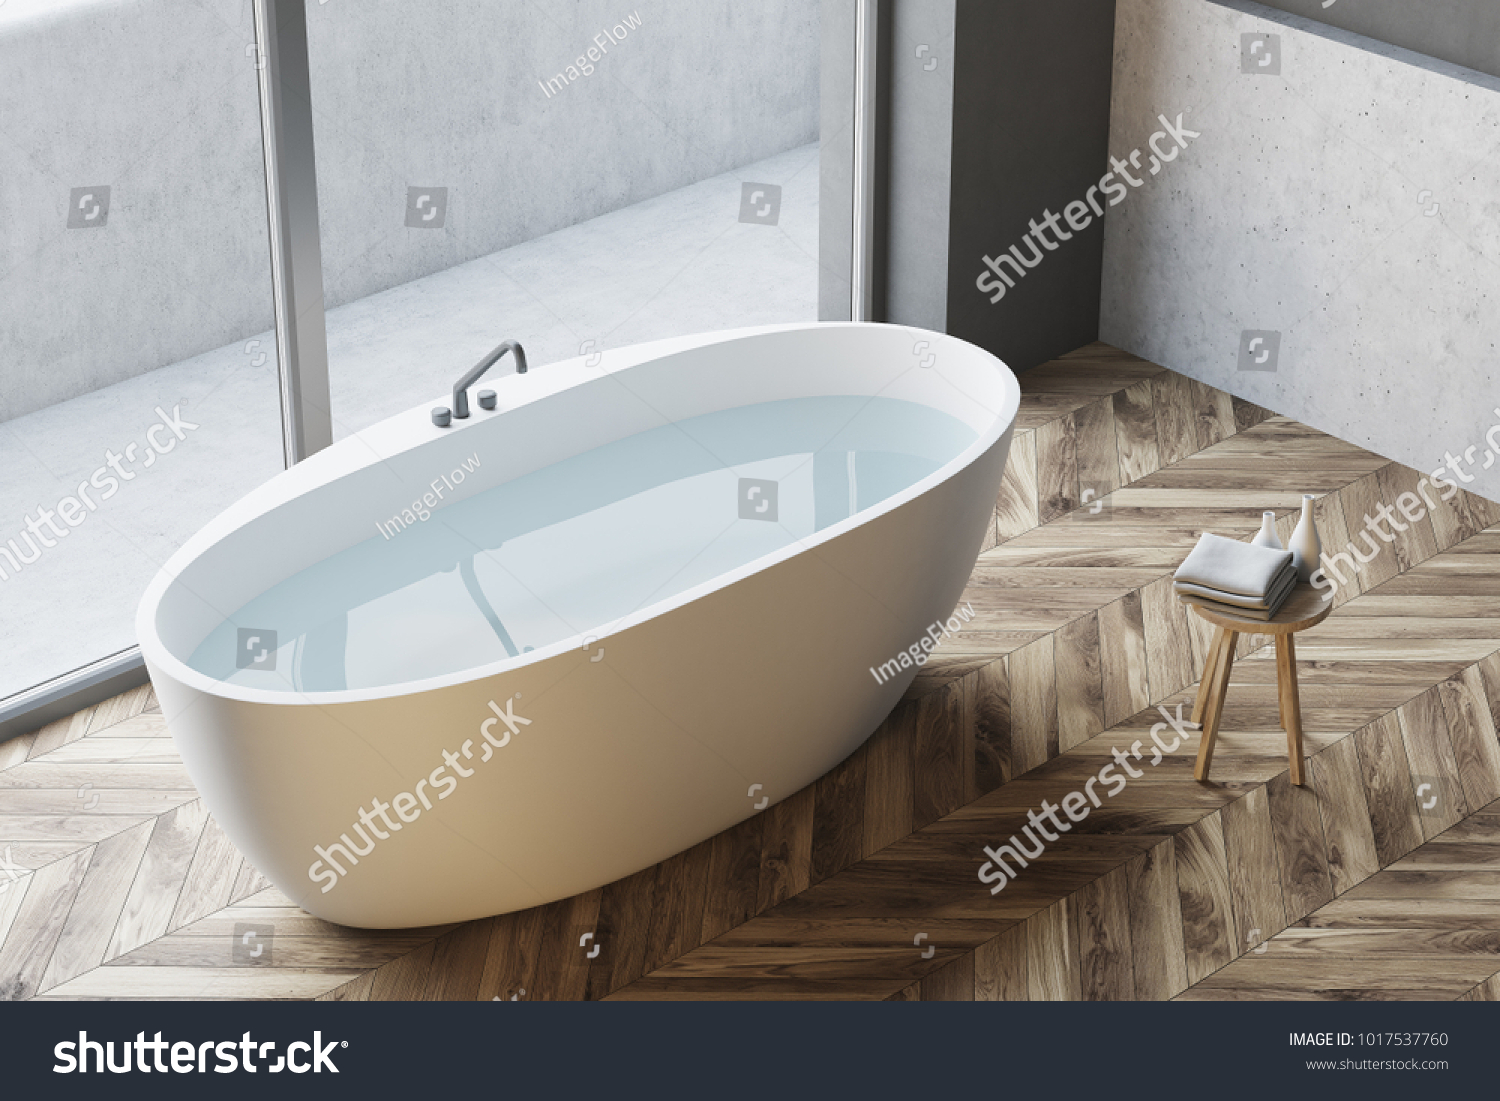 Top View White Bathtub Water Standing Stock Illustration 1017537760 ...